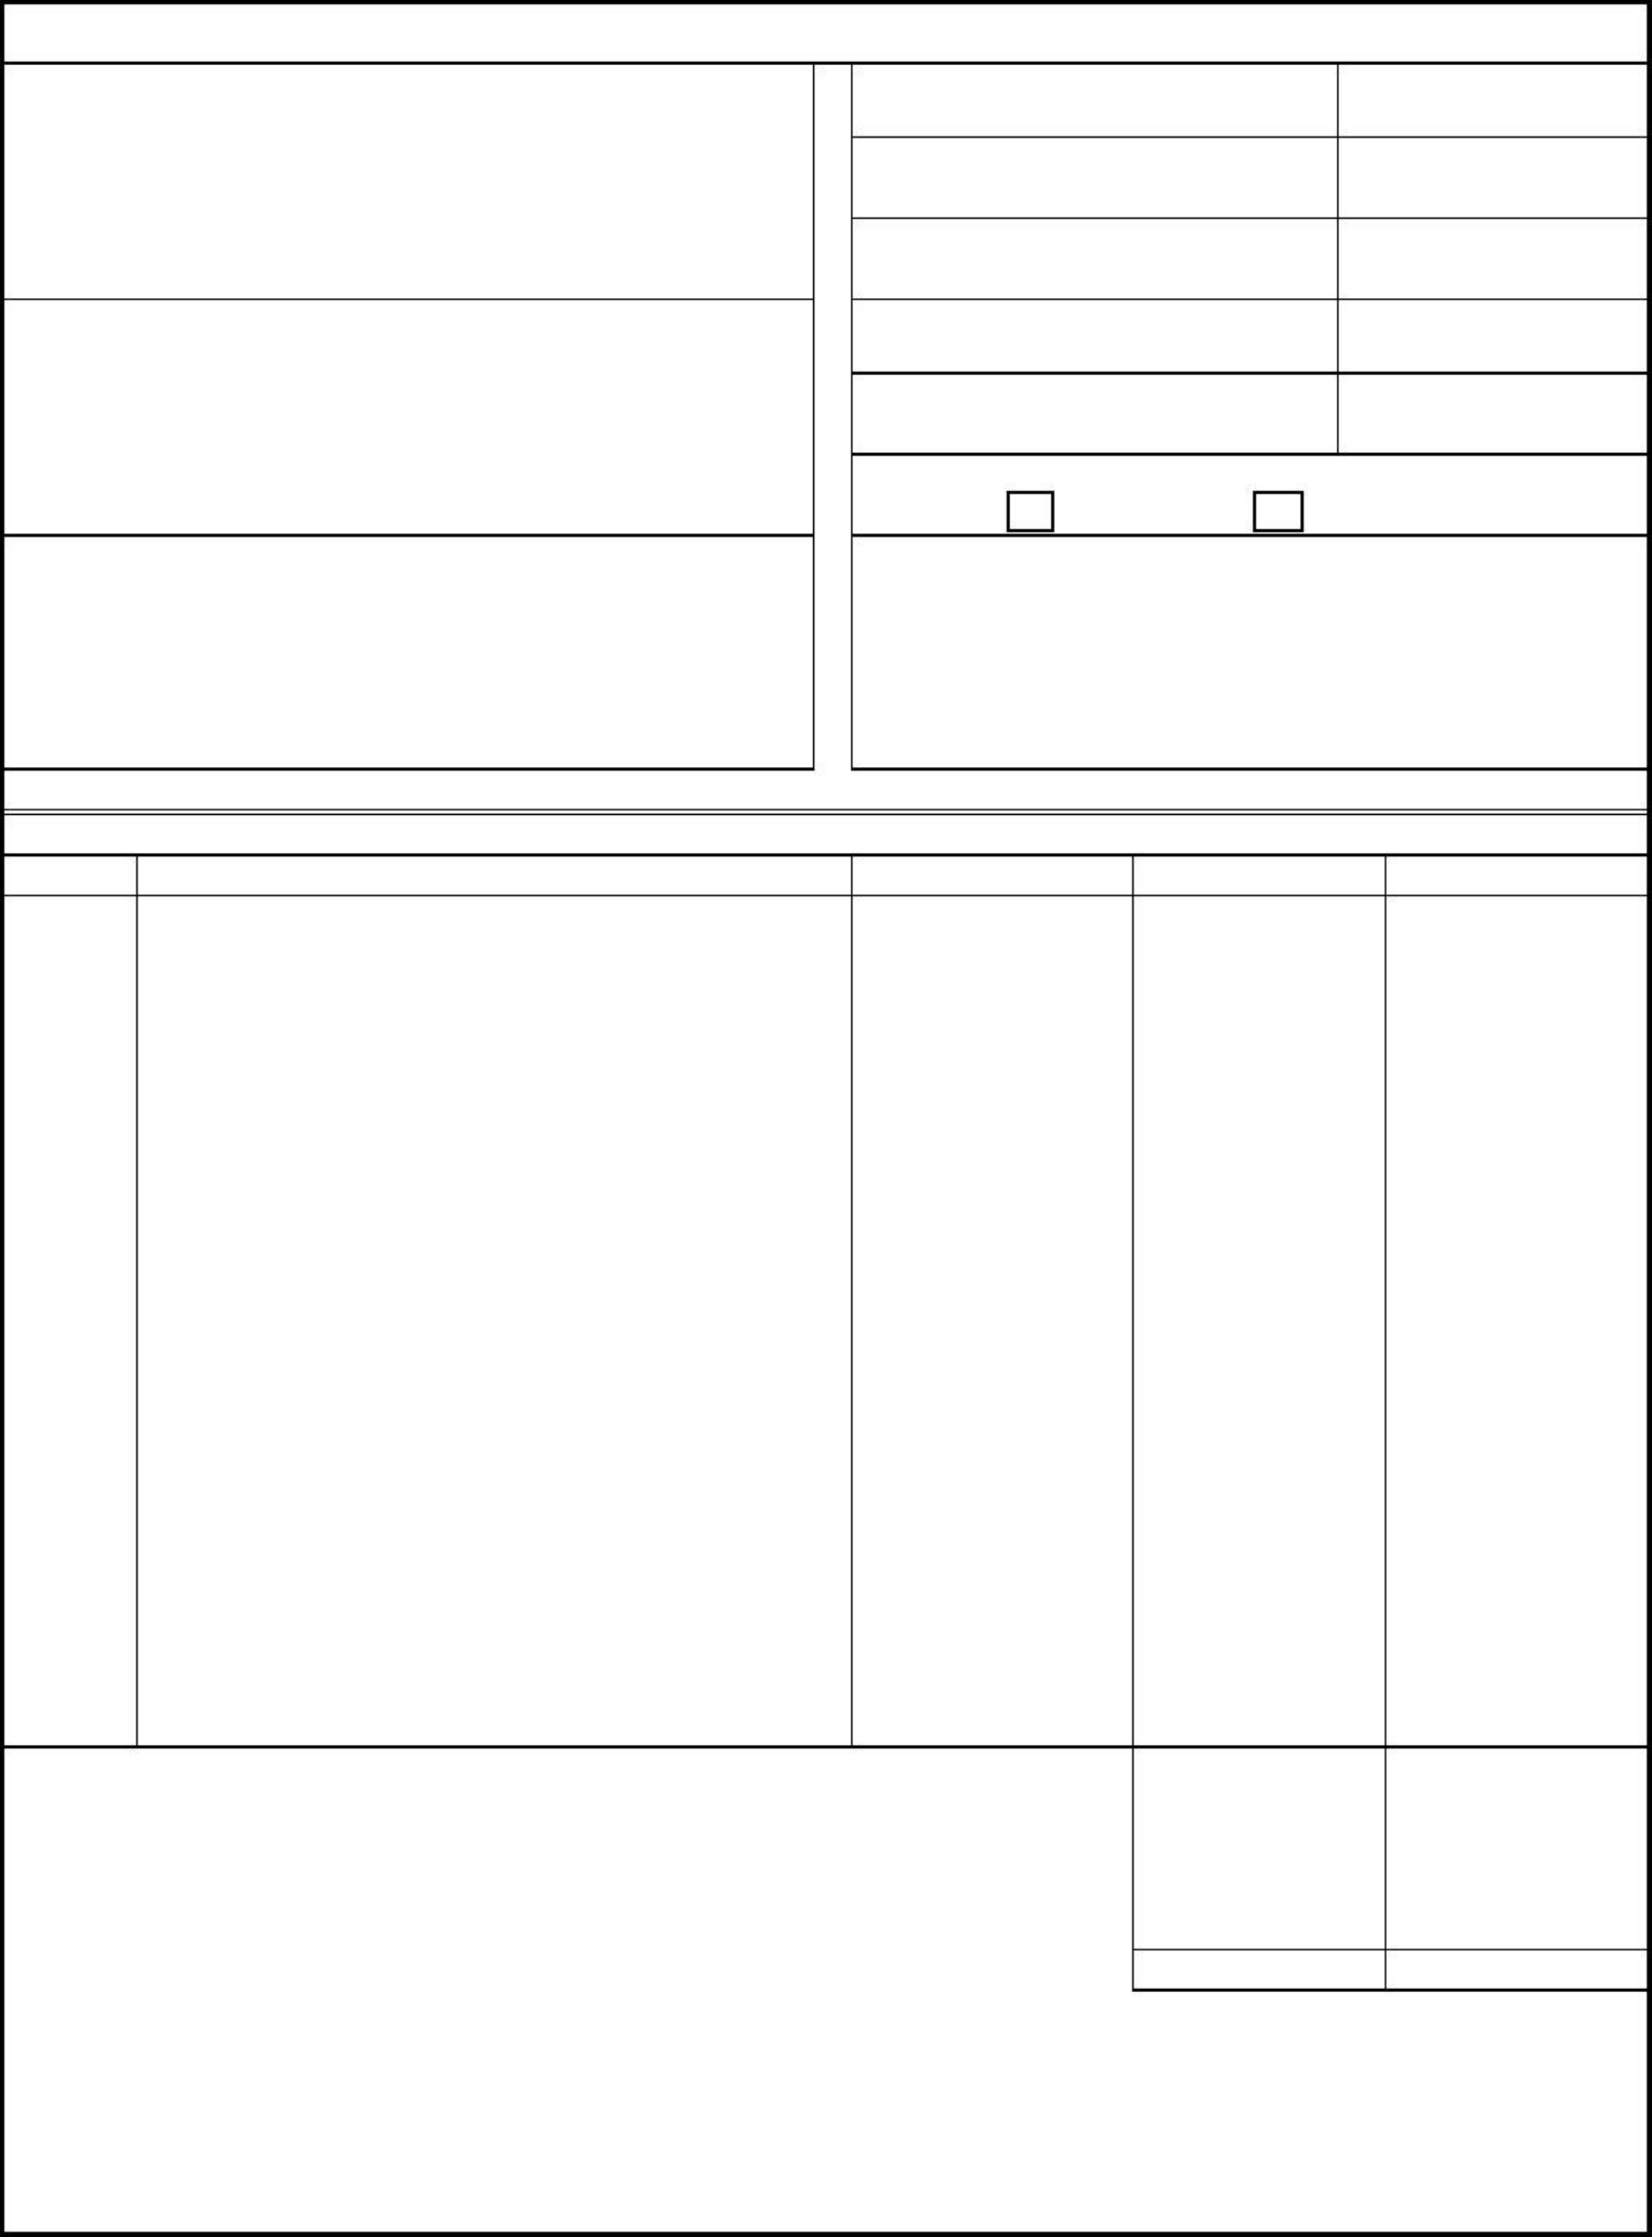 Blank Commercial Invoice Template Free Download - Commercial invoice template free download